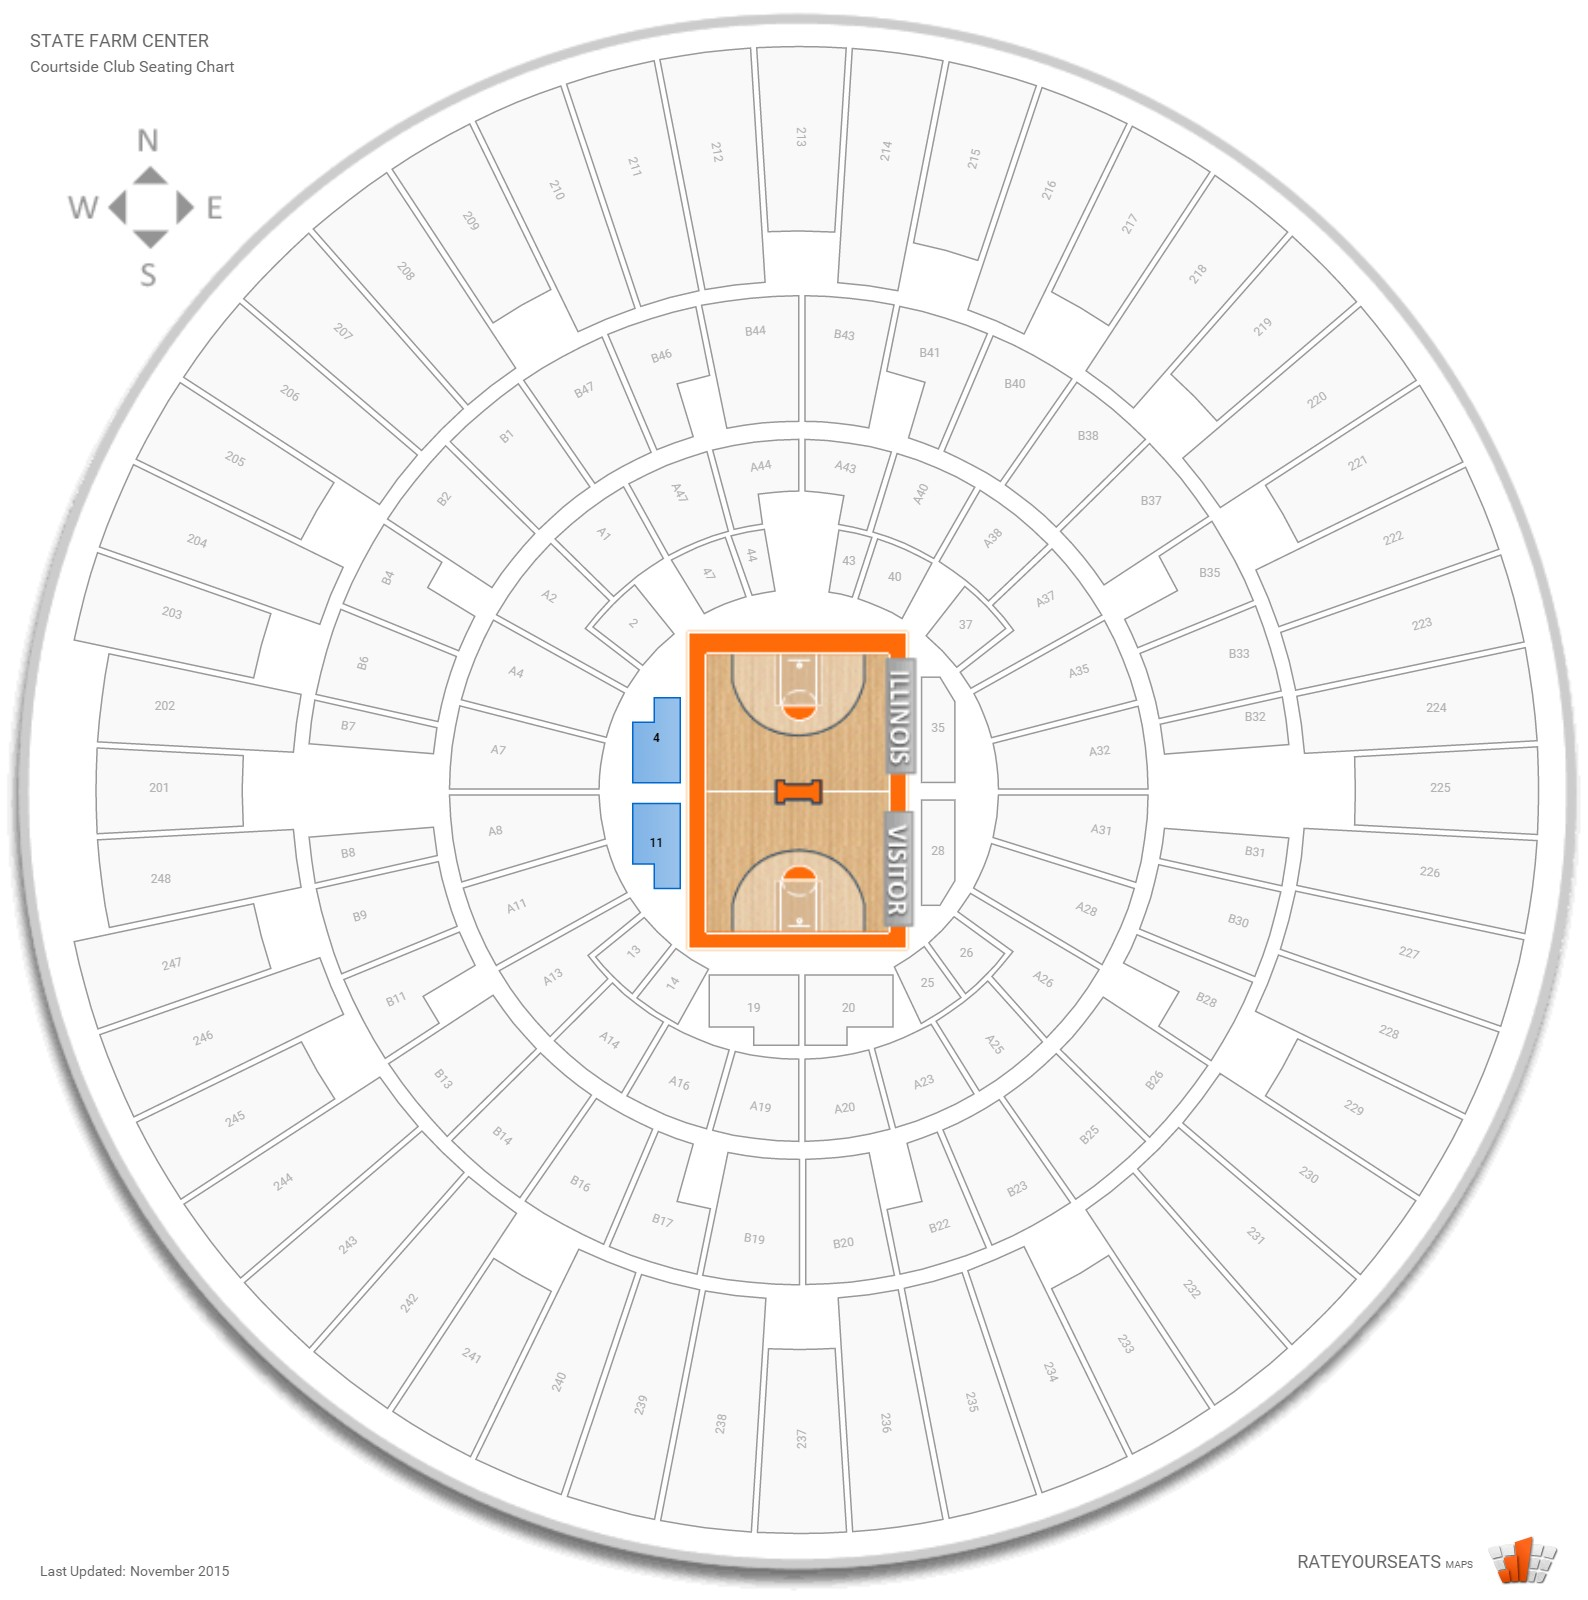 State Farm Center Courtside seating chart